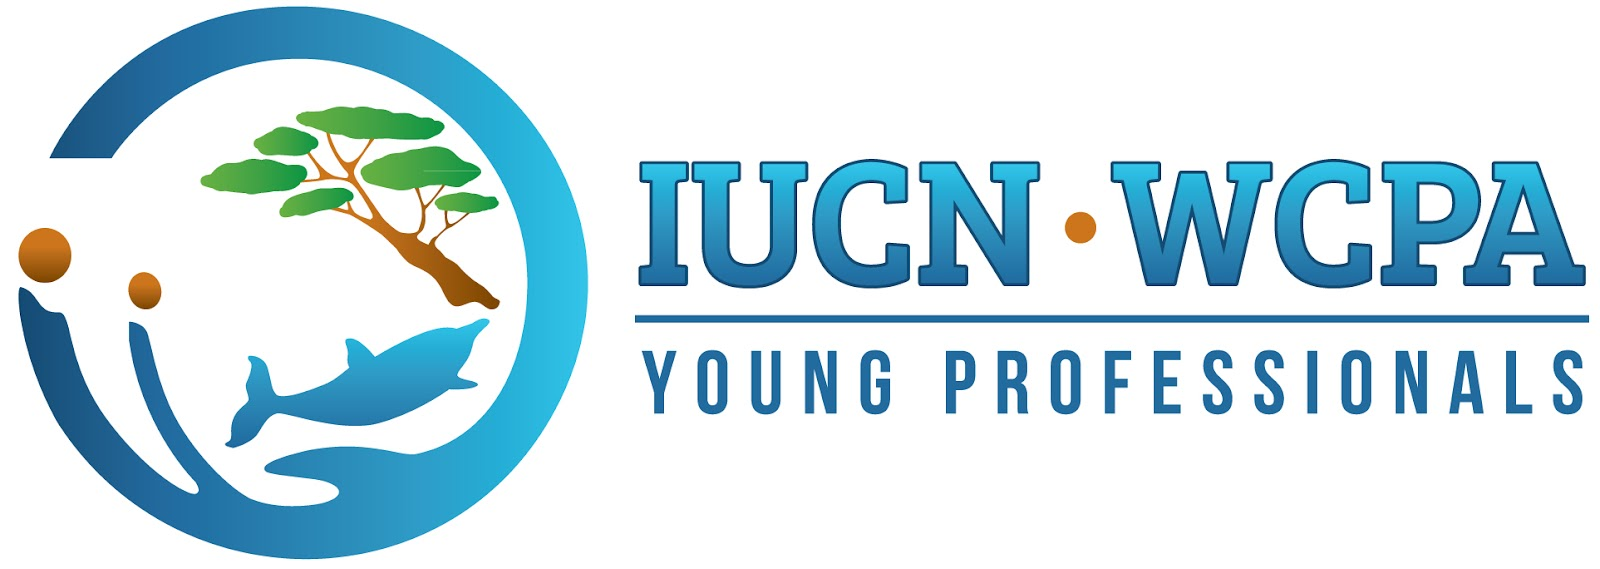 IUCN WCPA Young Professionals